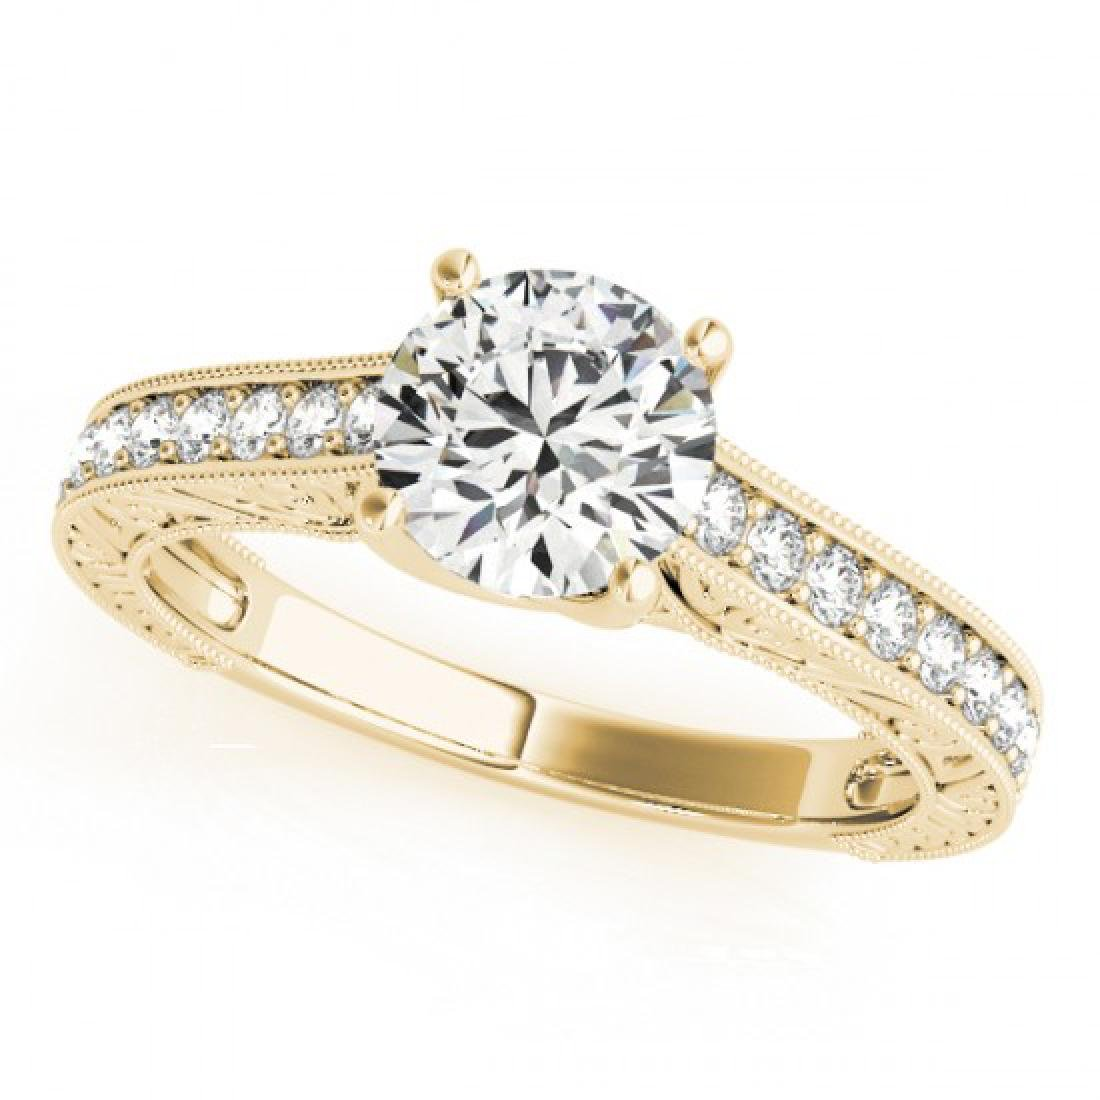 1.82 CTW Certified VS/SI Diamond Solitaire Ring 14K